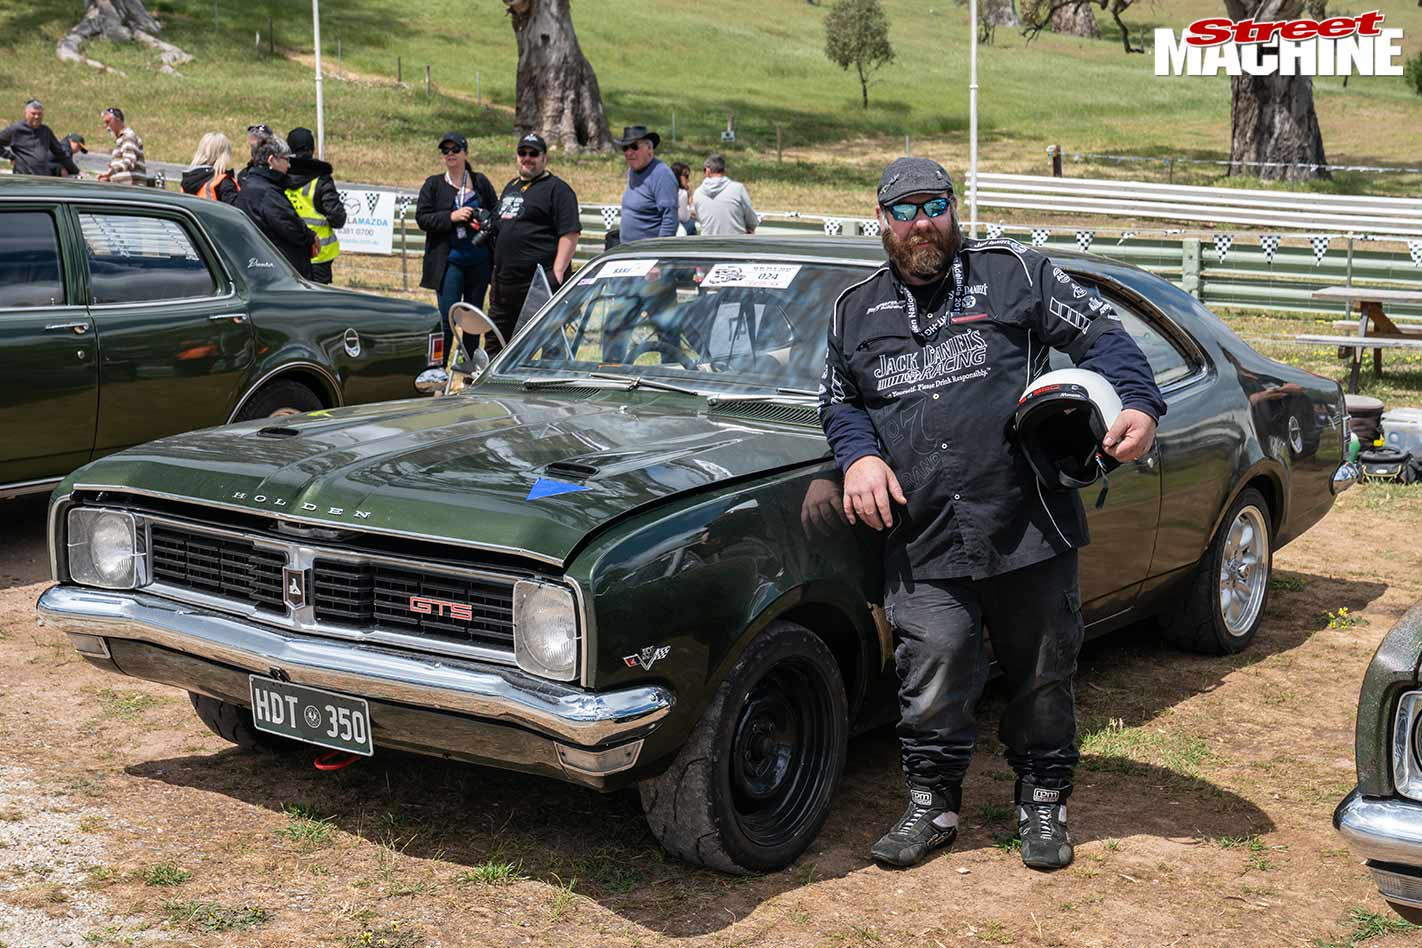 Holden HT GTS coupe